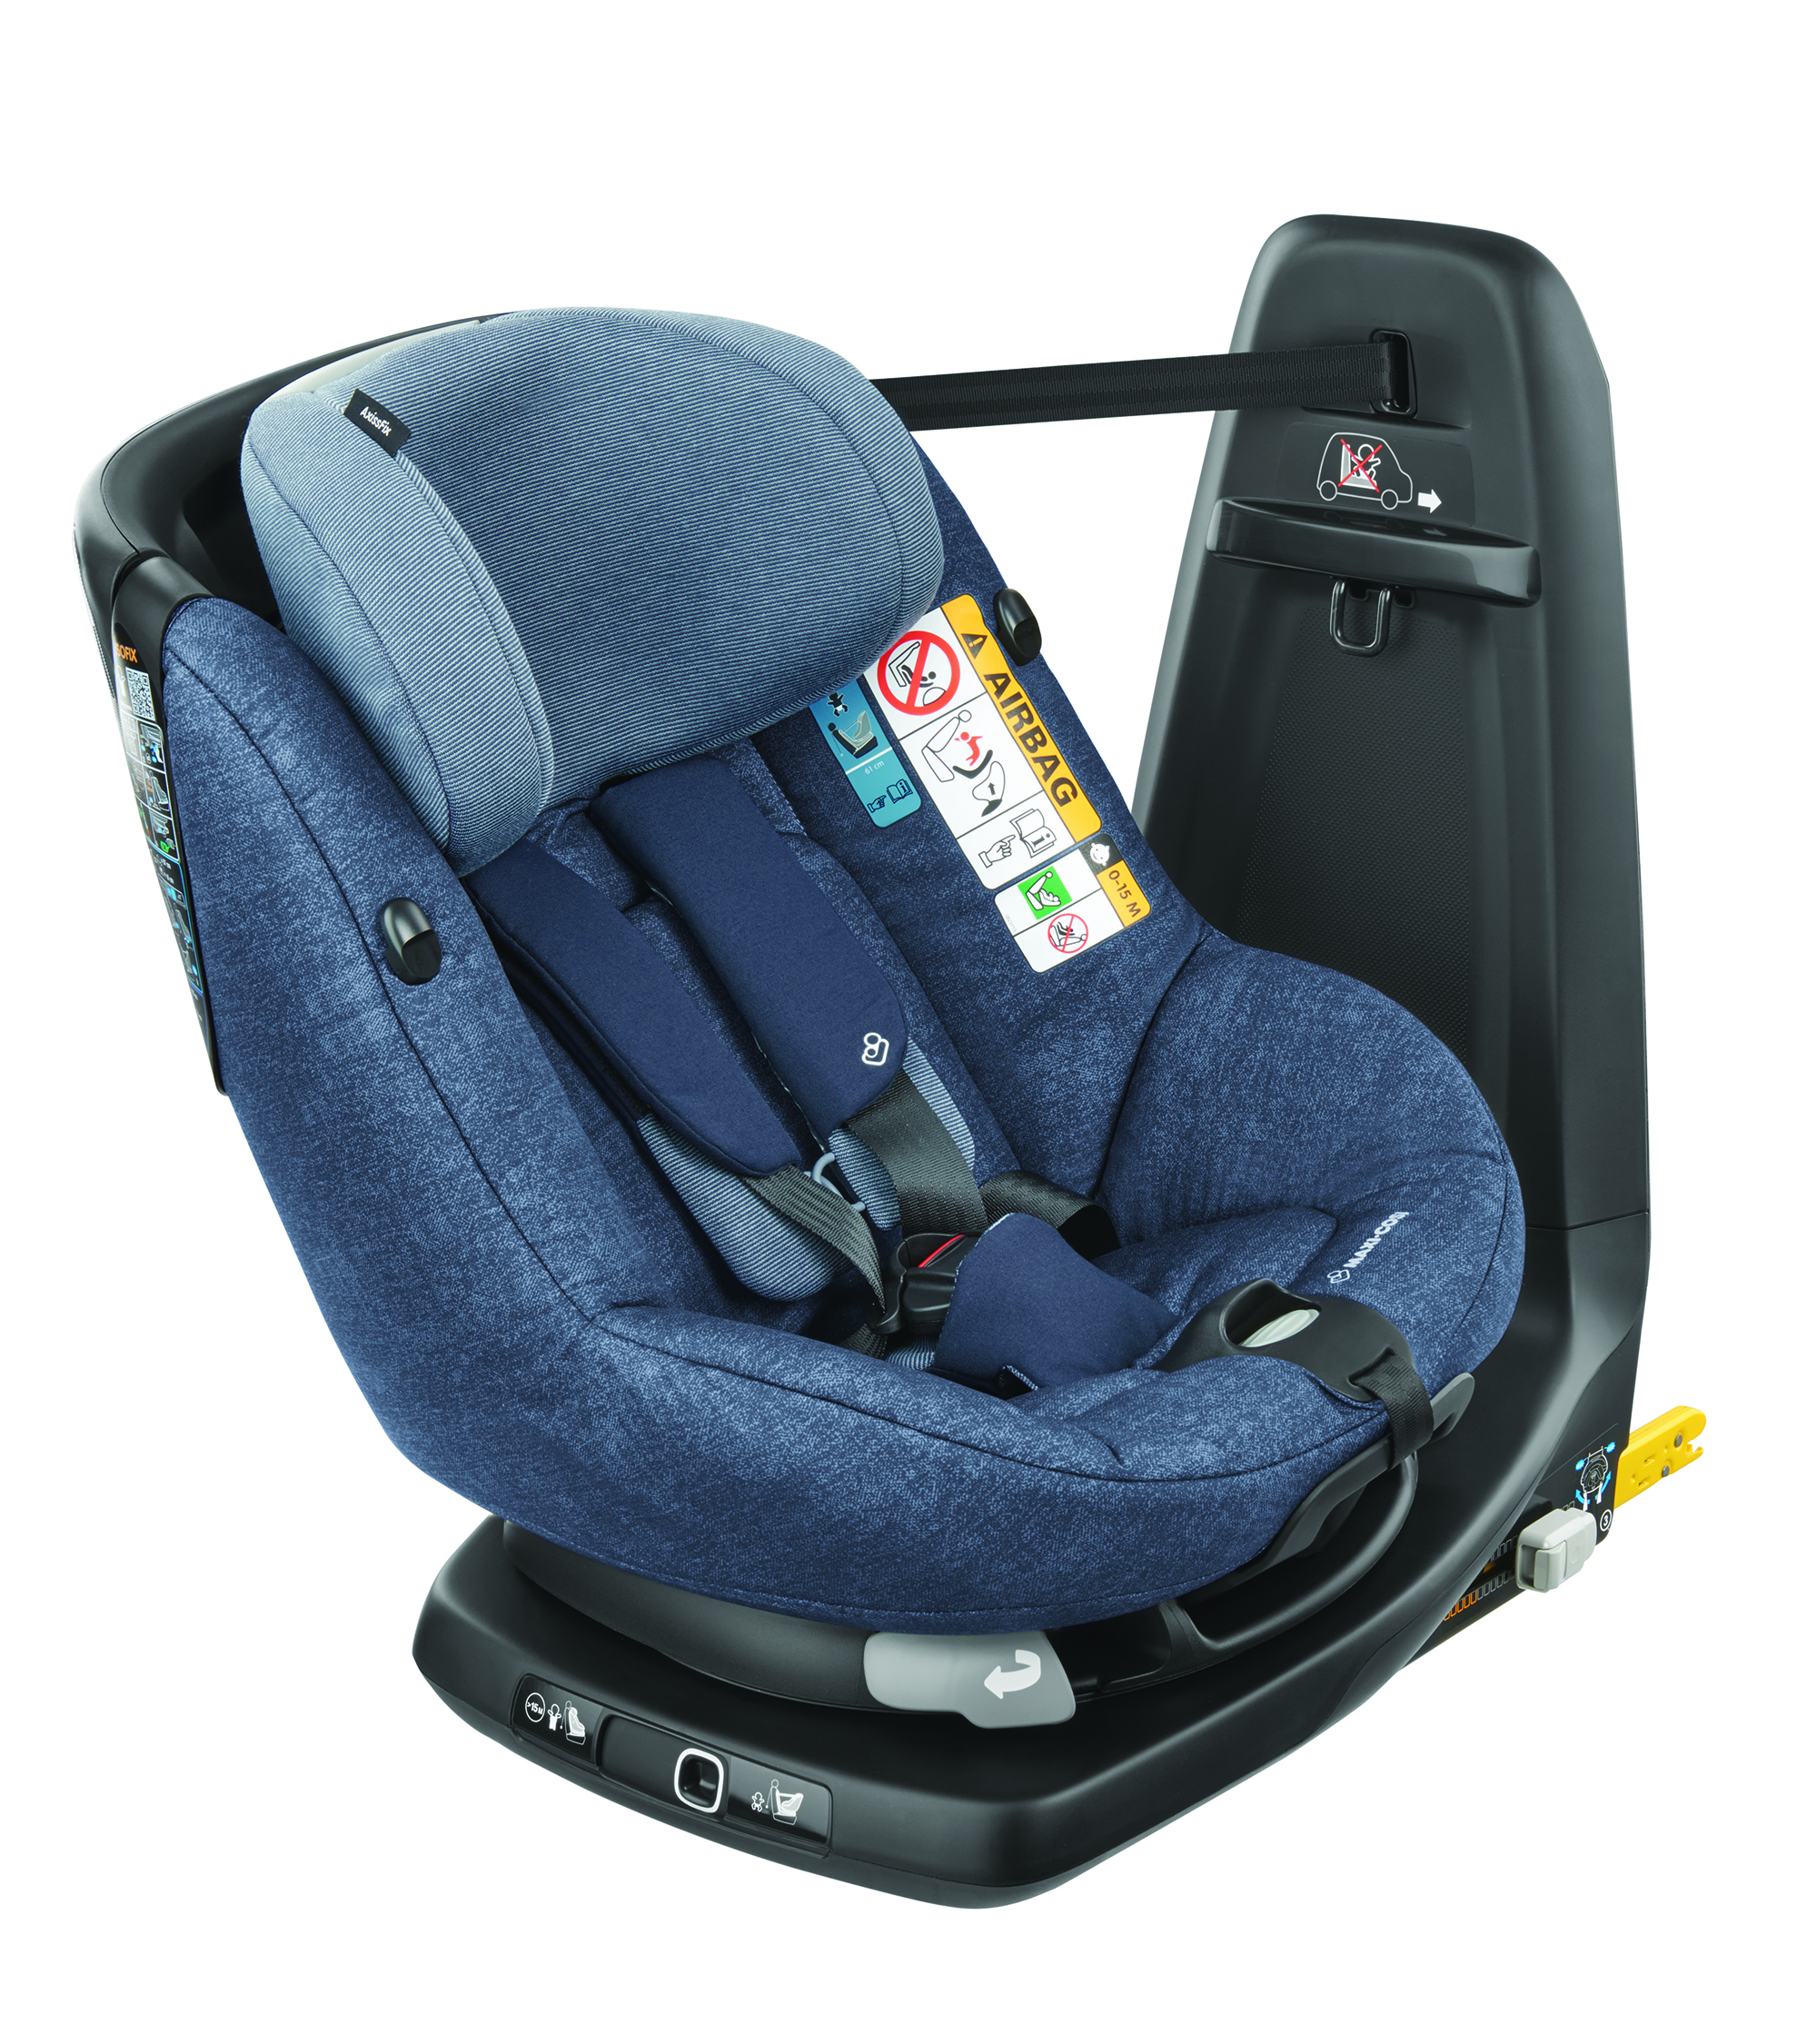 8020243110_2018_maxicosi_carseat_toddlercarseat_axissfix_blue_nomadblue_3qrt.jpg